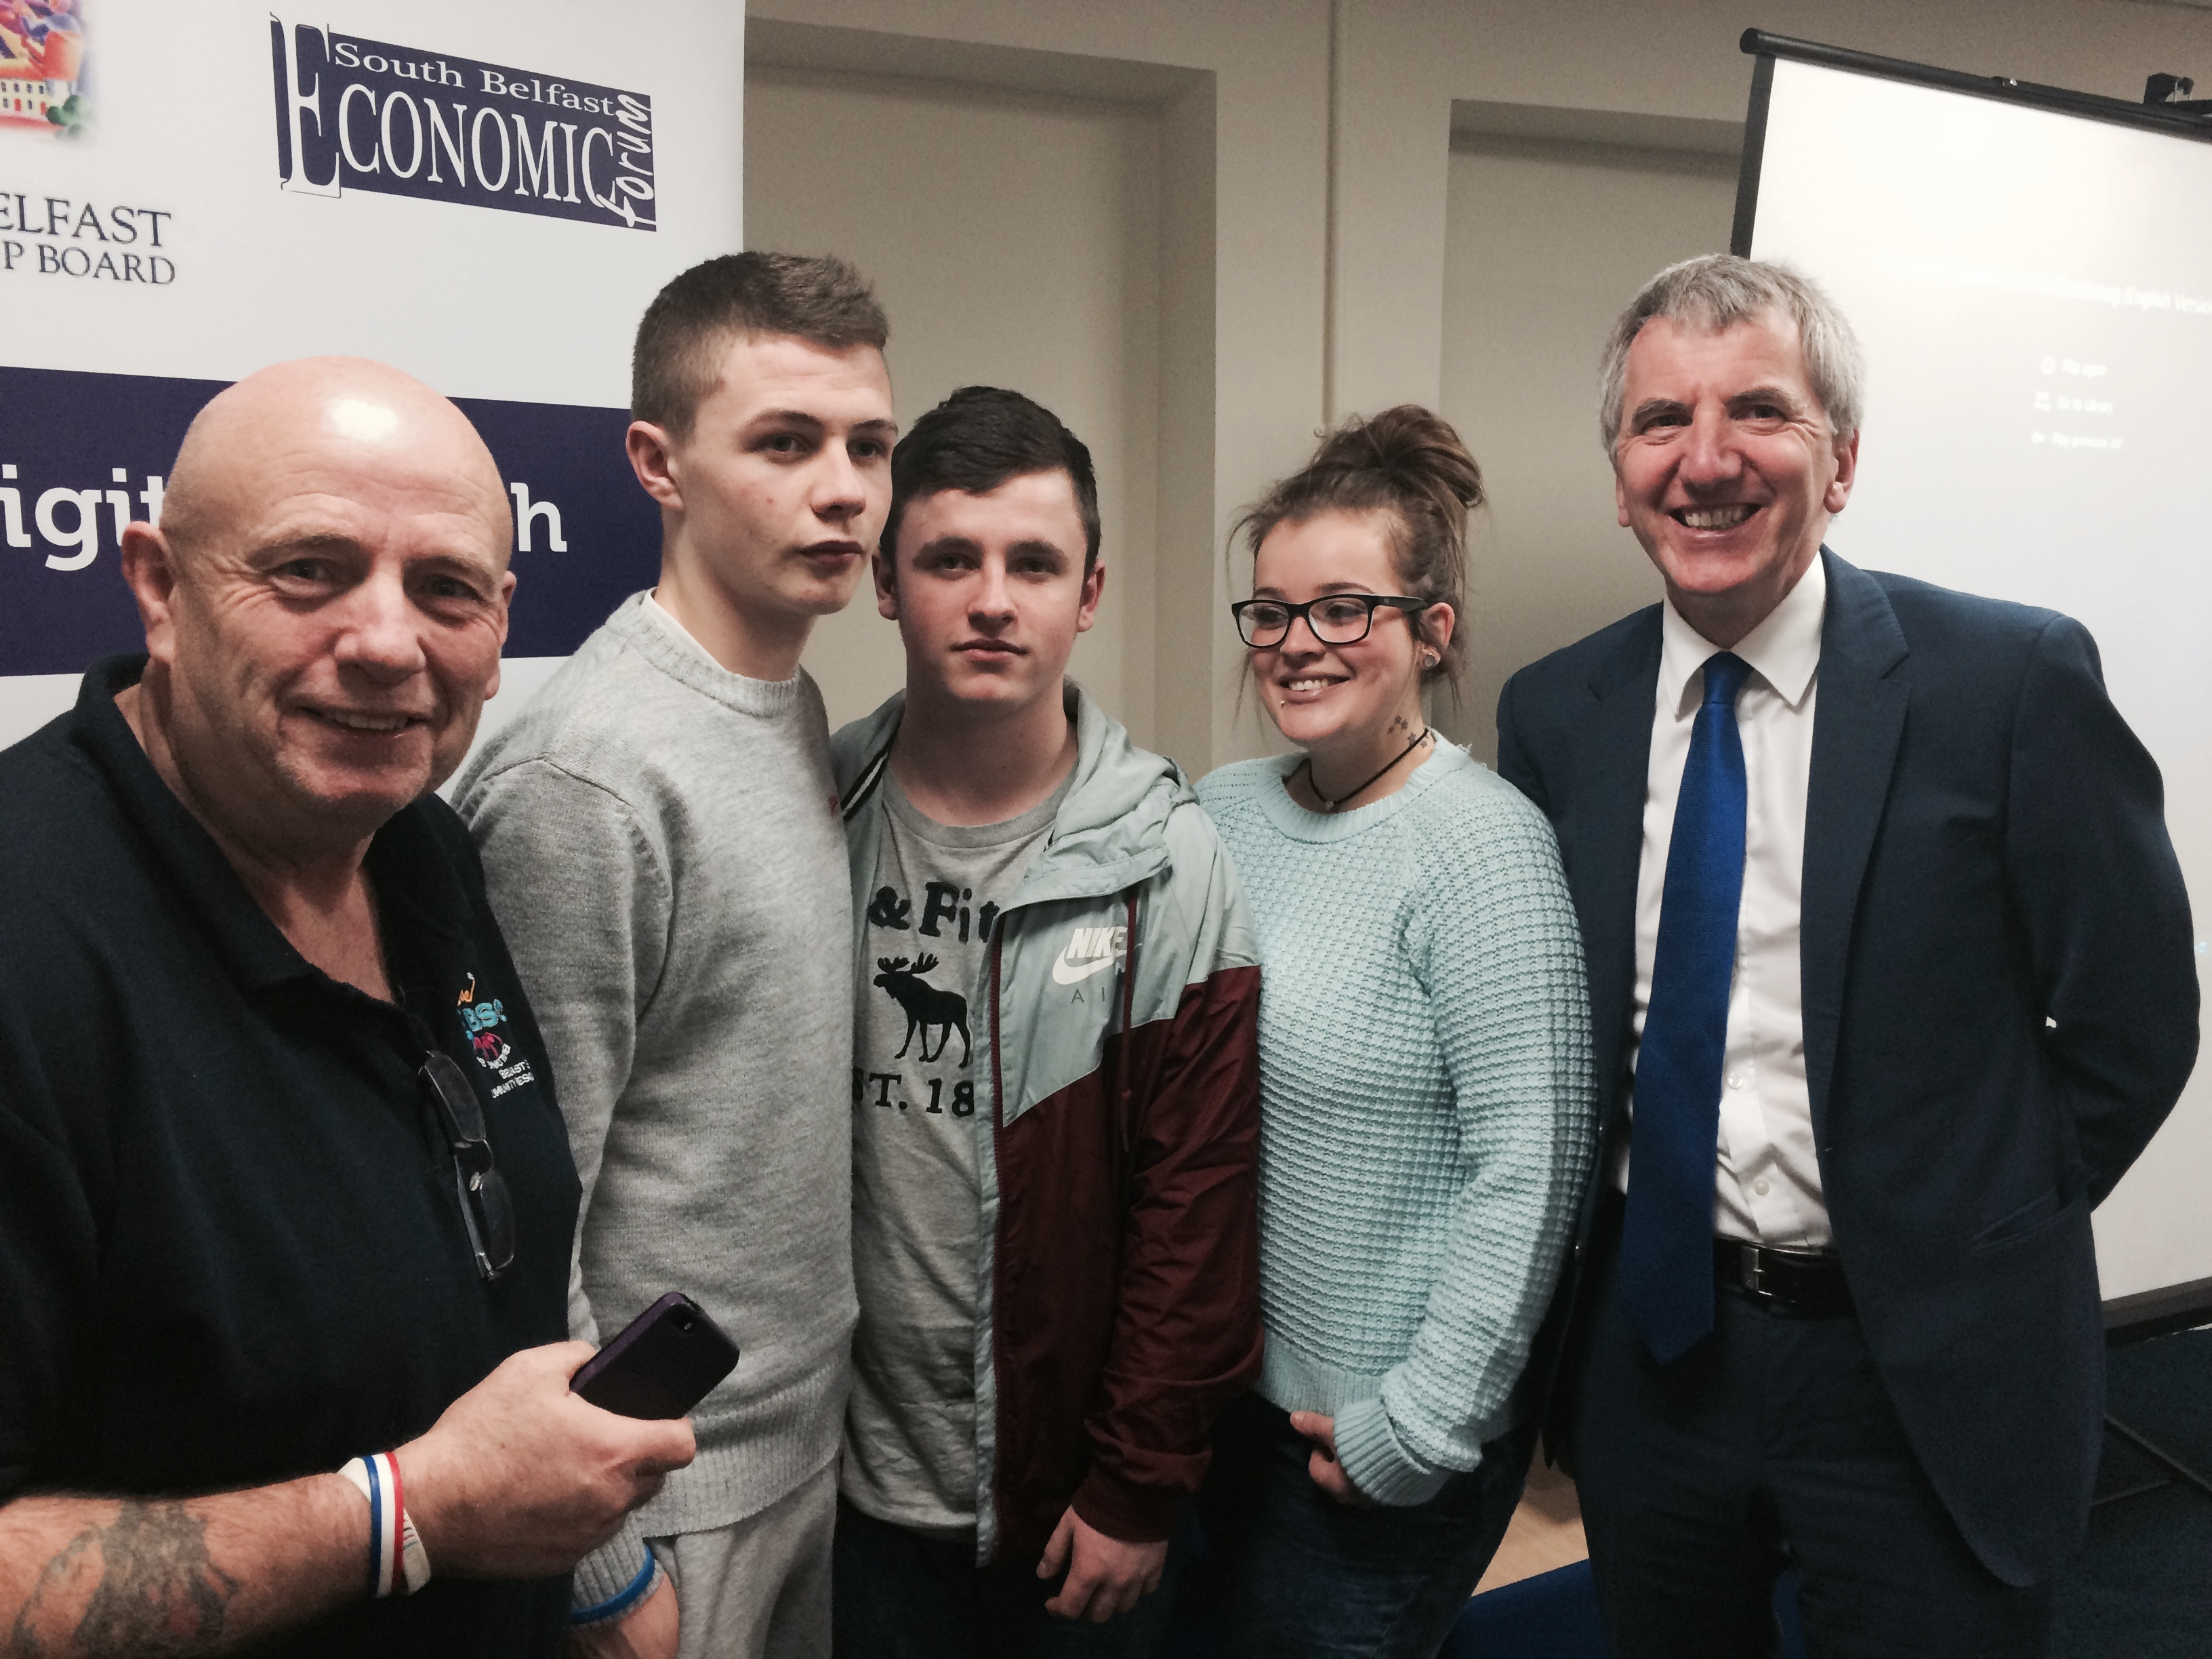 Talented young film-makers Ceejay, Dillon and Natasha with Sandy Row community leader Garnet Busby